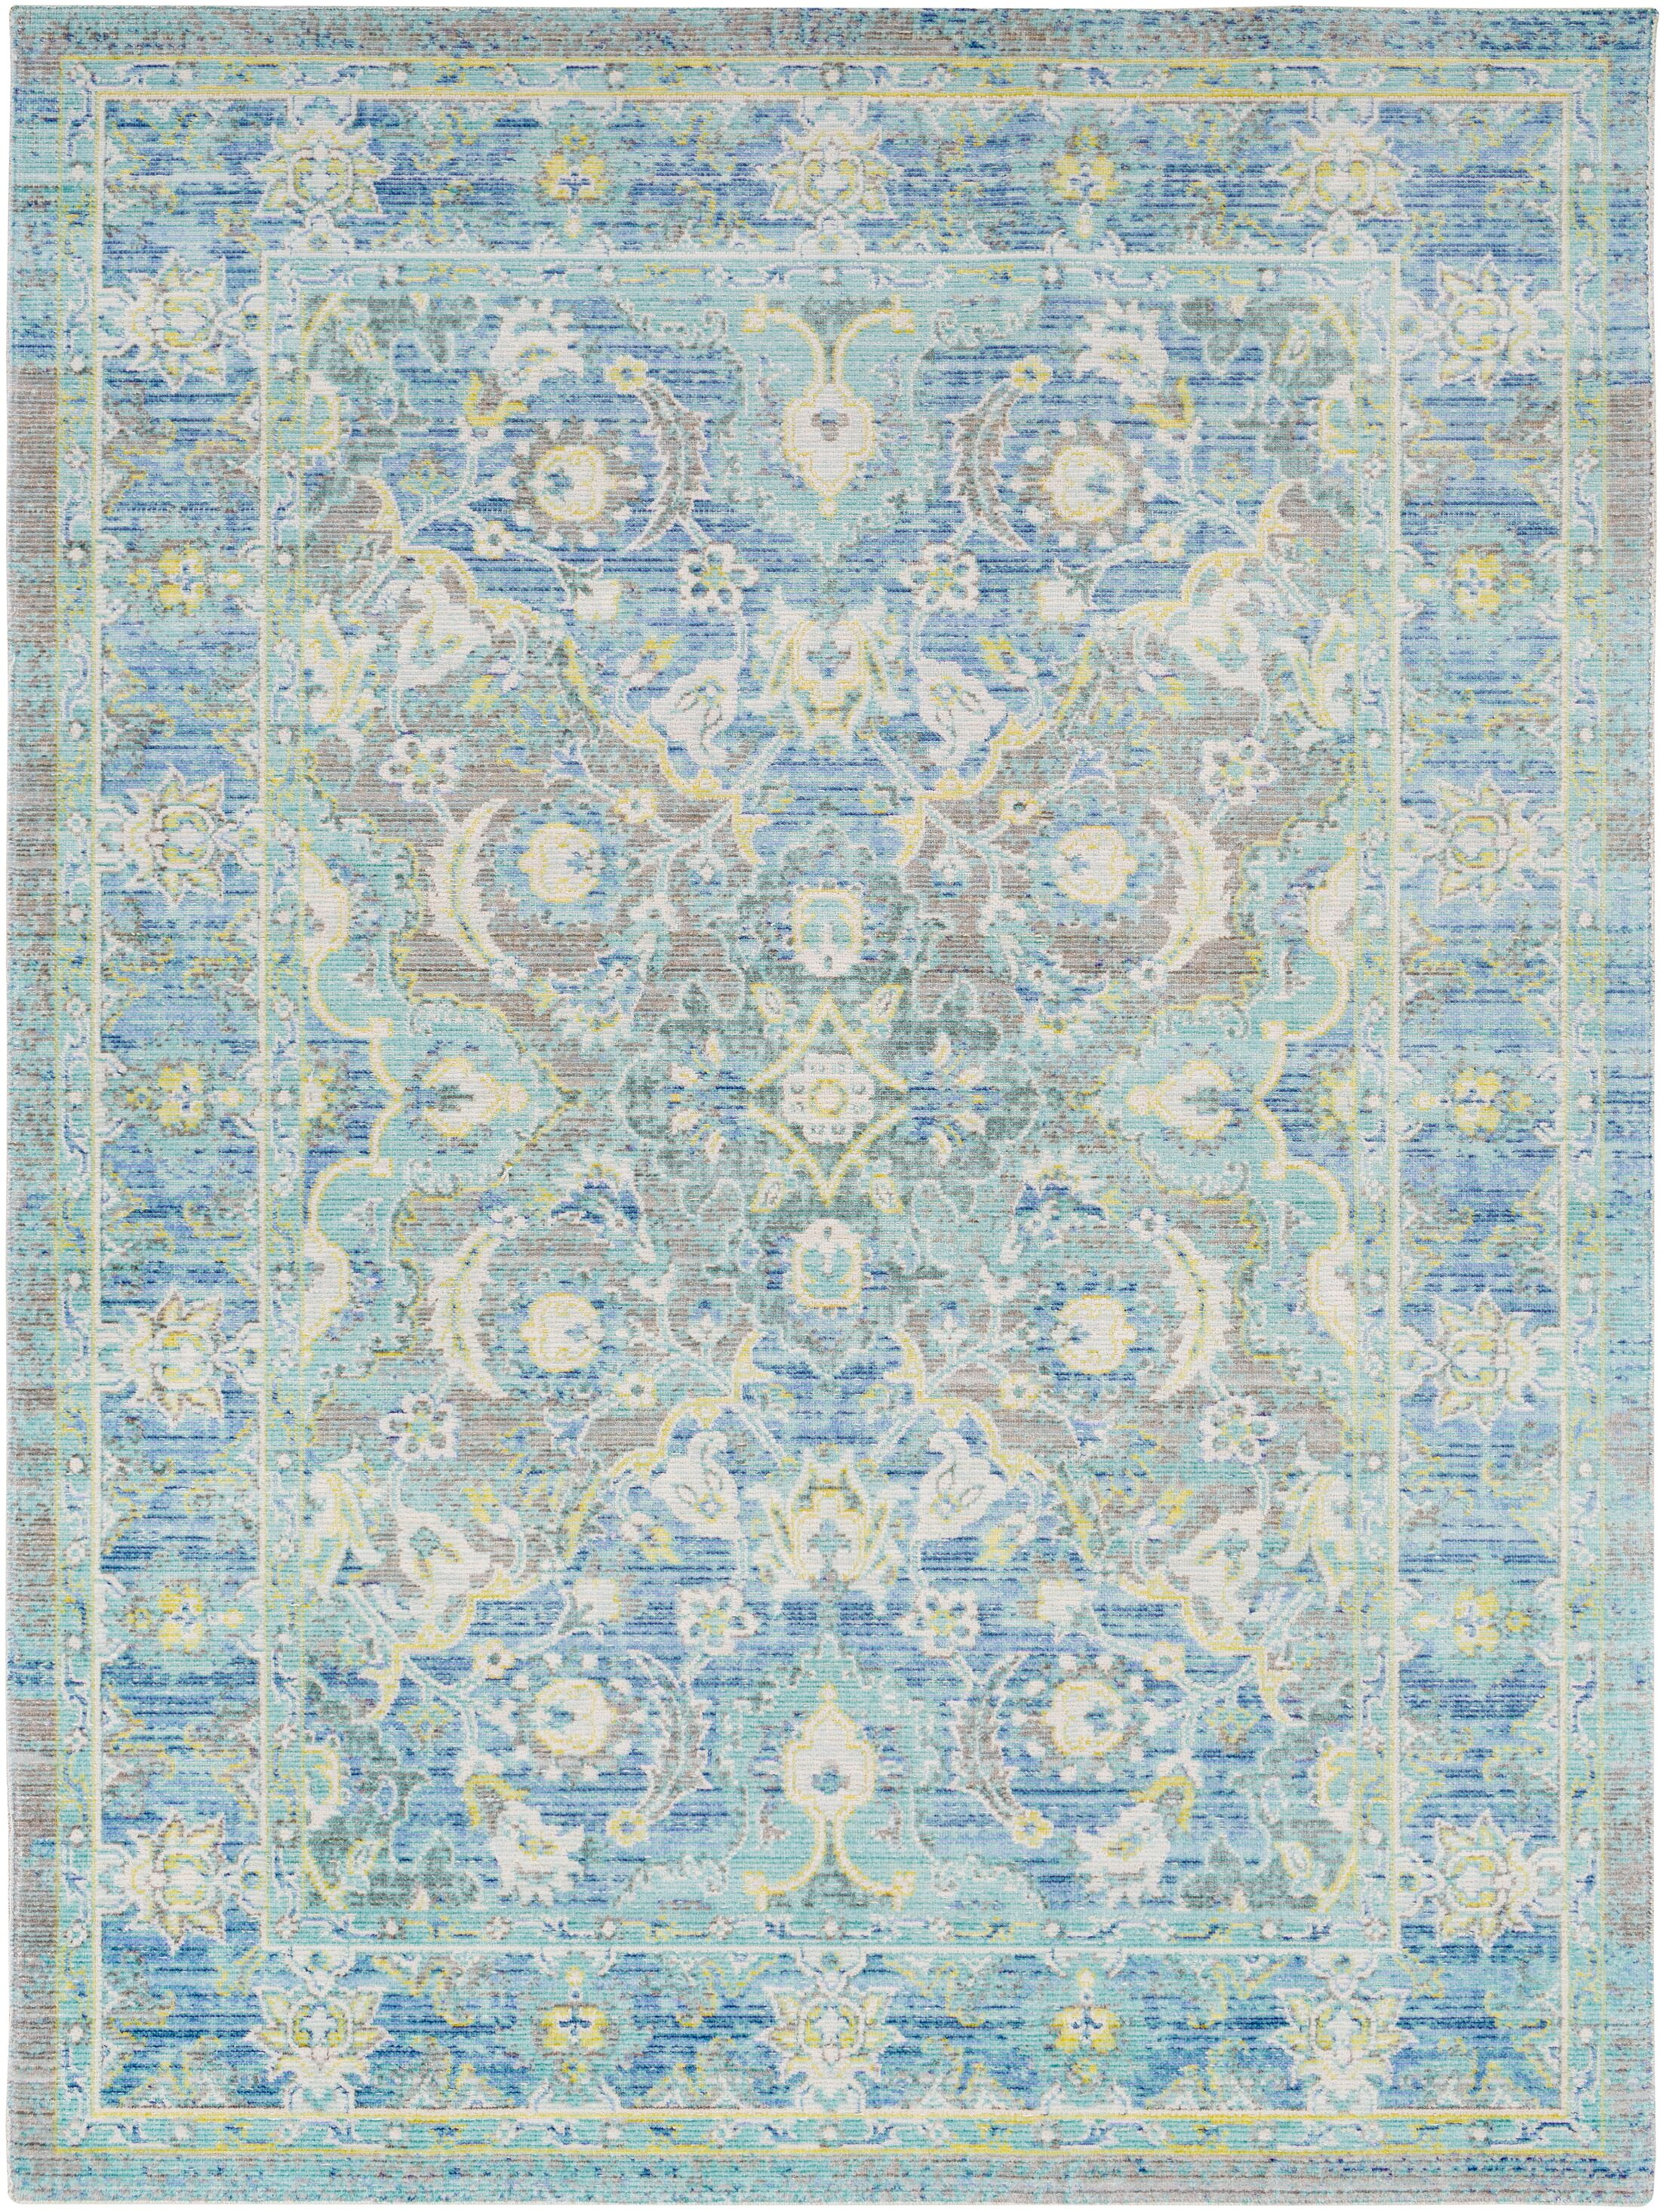 Lyngby-Taarbæk Floral and Plants Aqua Area Rug Rug Size: Rectangle 3'11